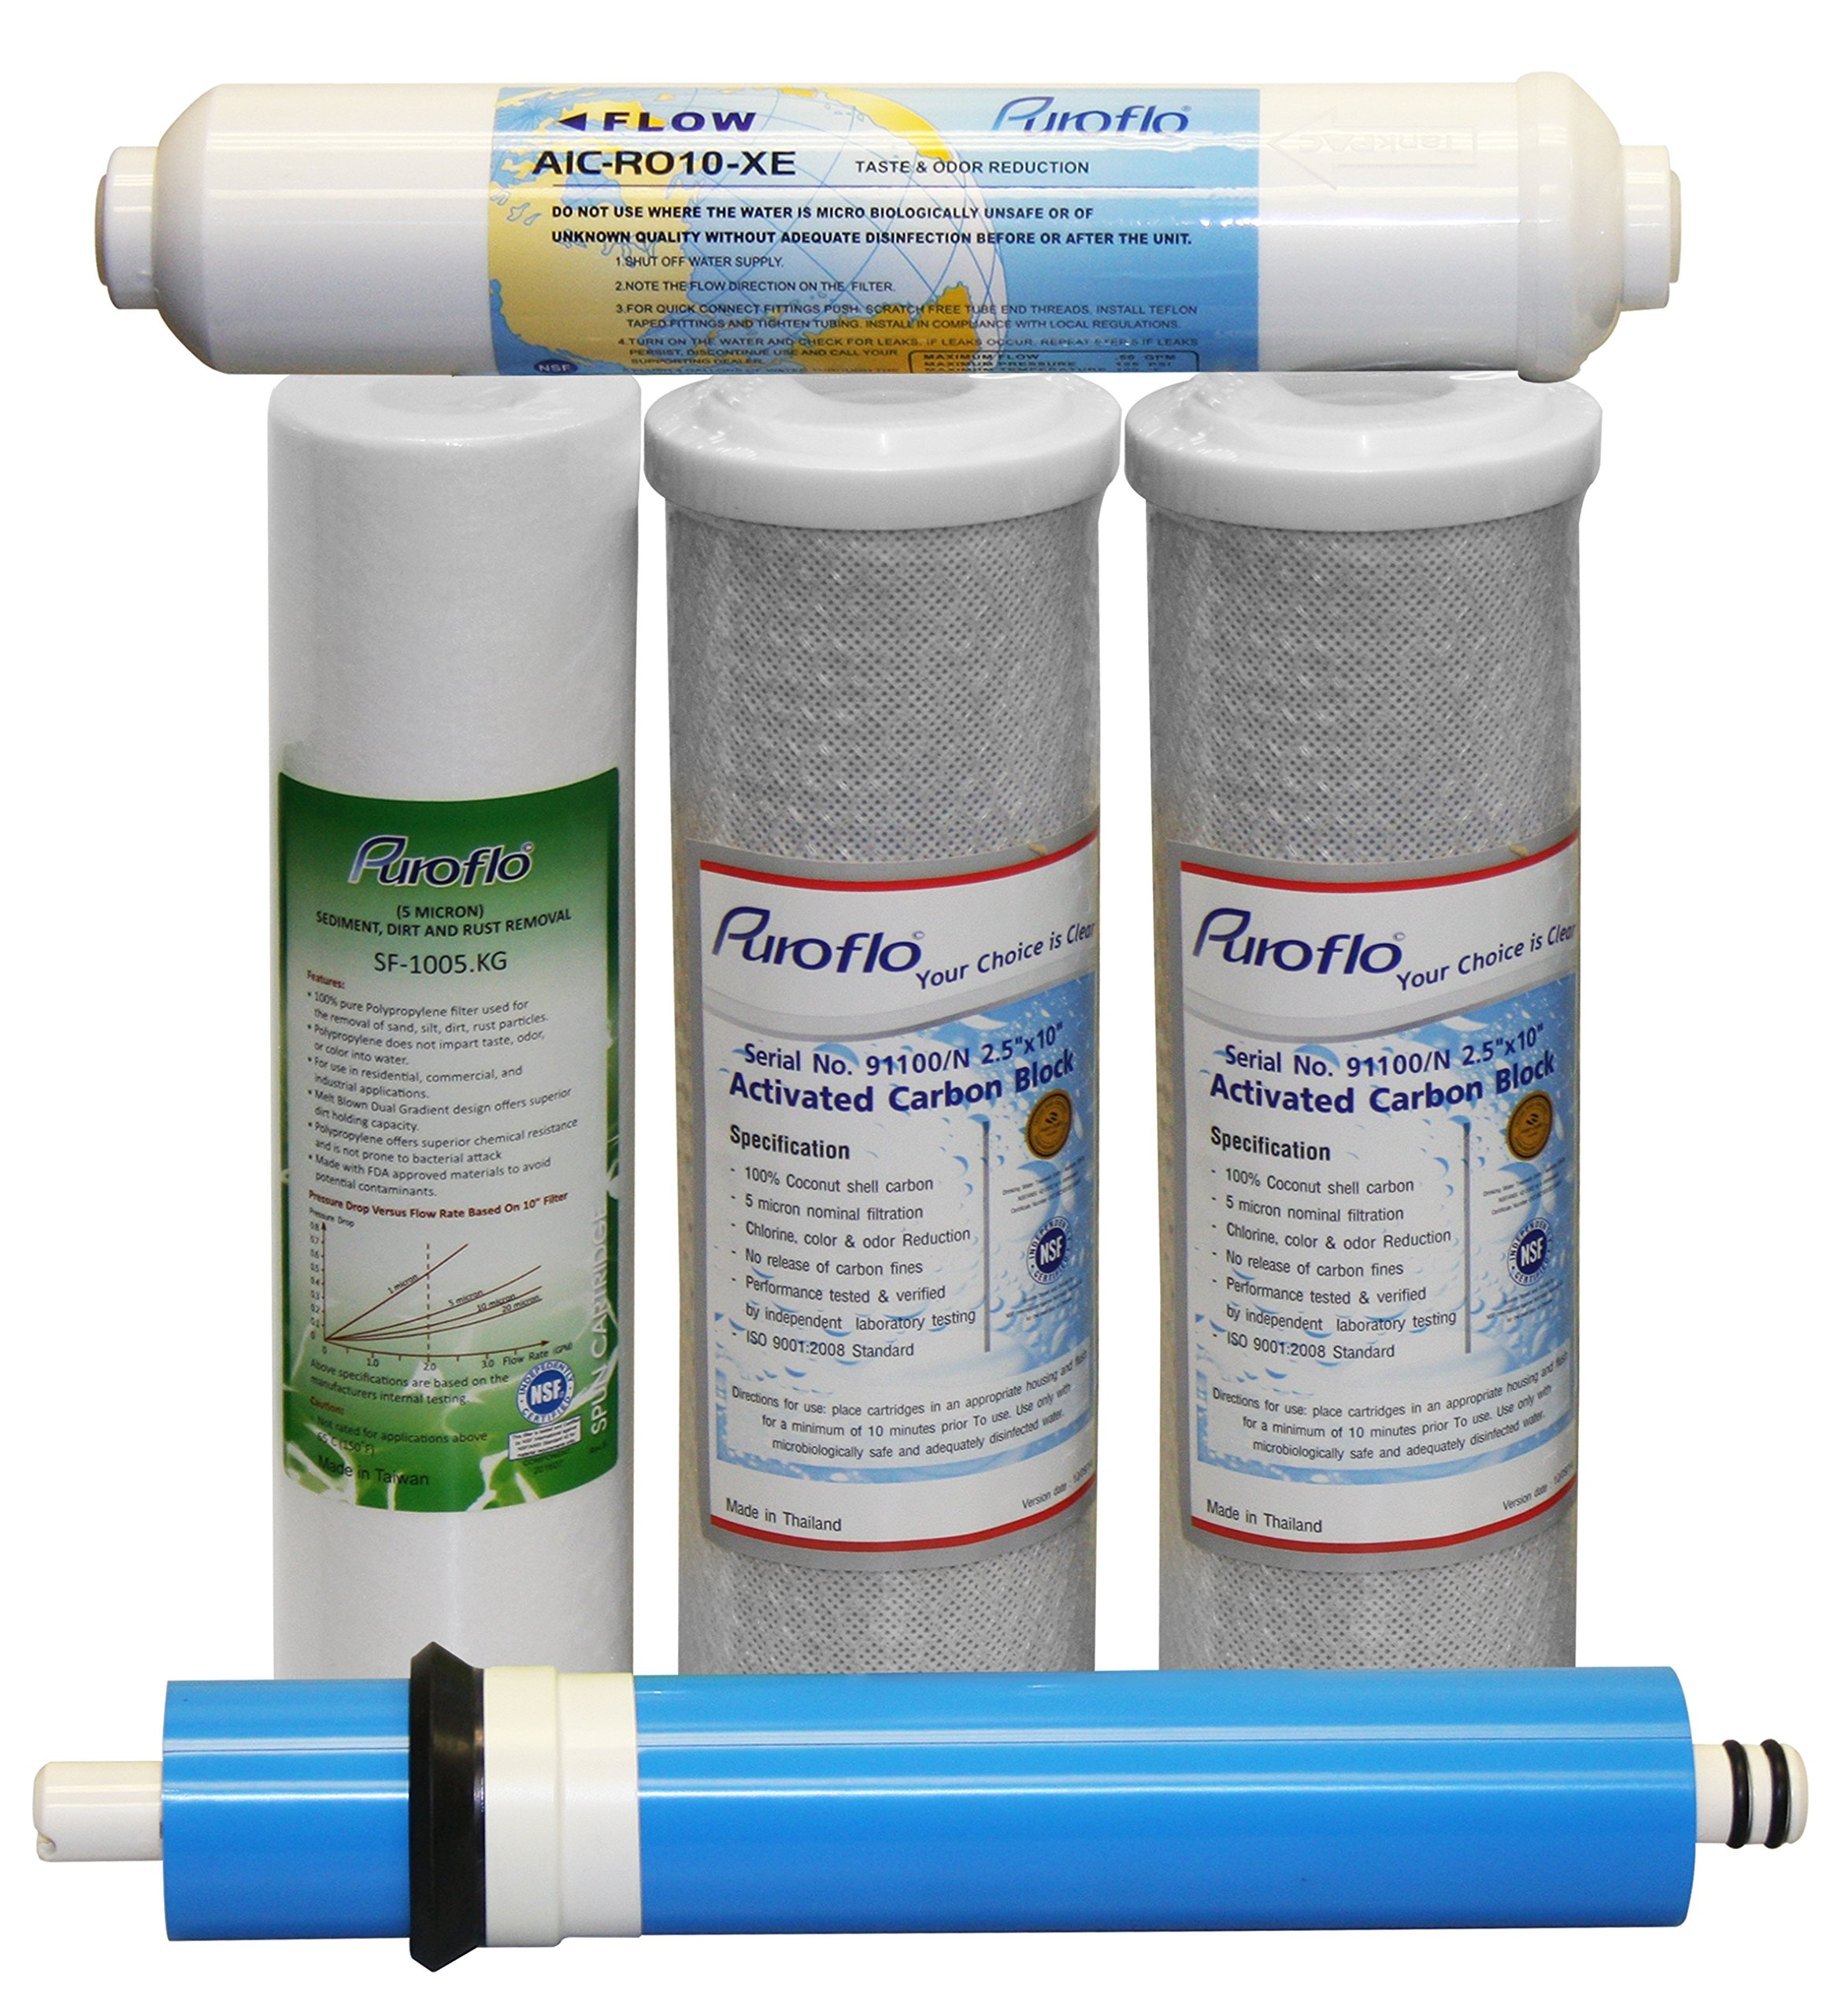 Puroflo 5-Stage Under Sink Reverse Osmosis Annual Replacement Filter Kit by Puroflo